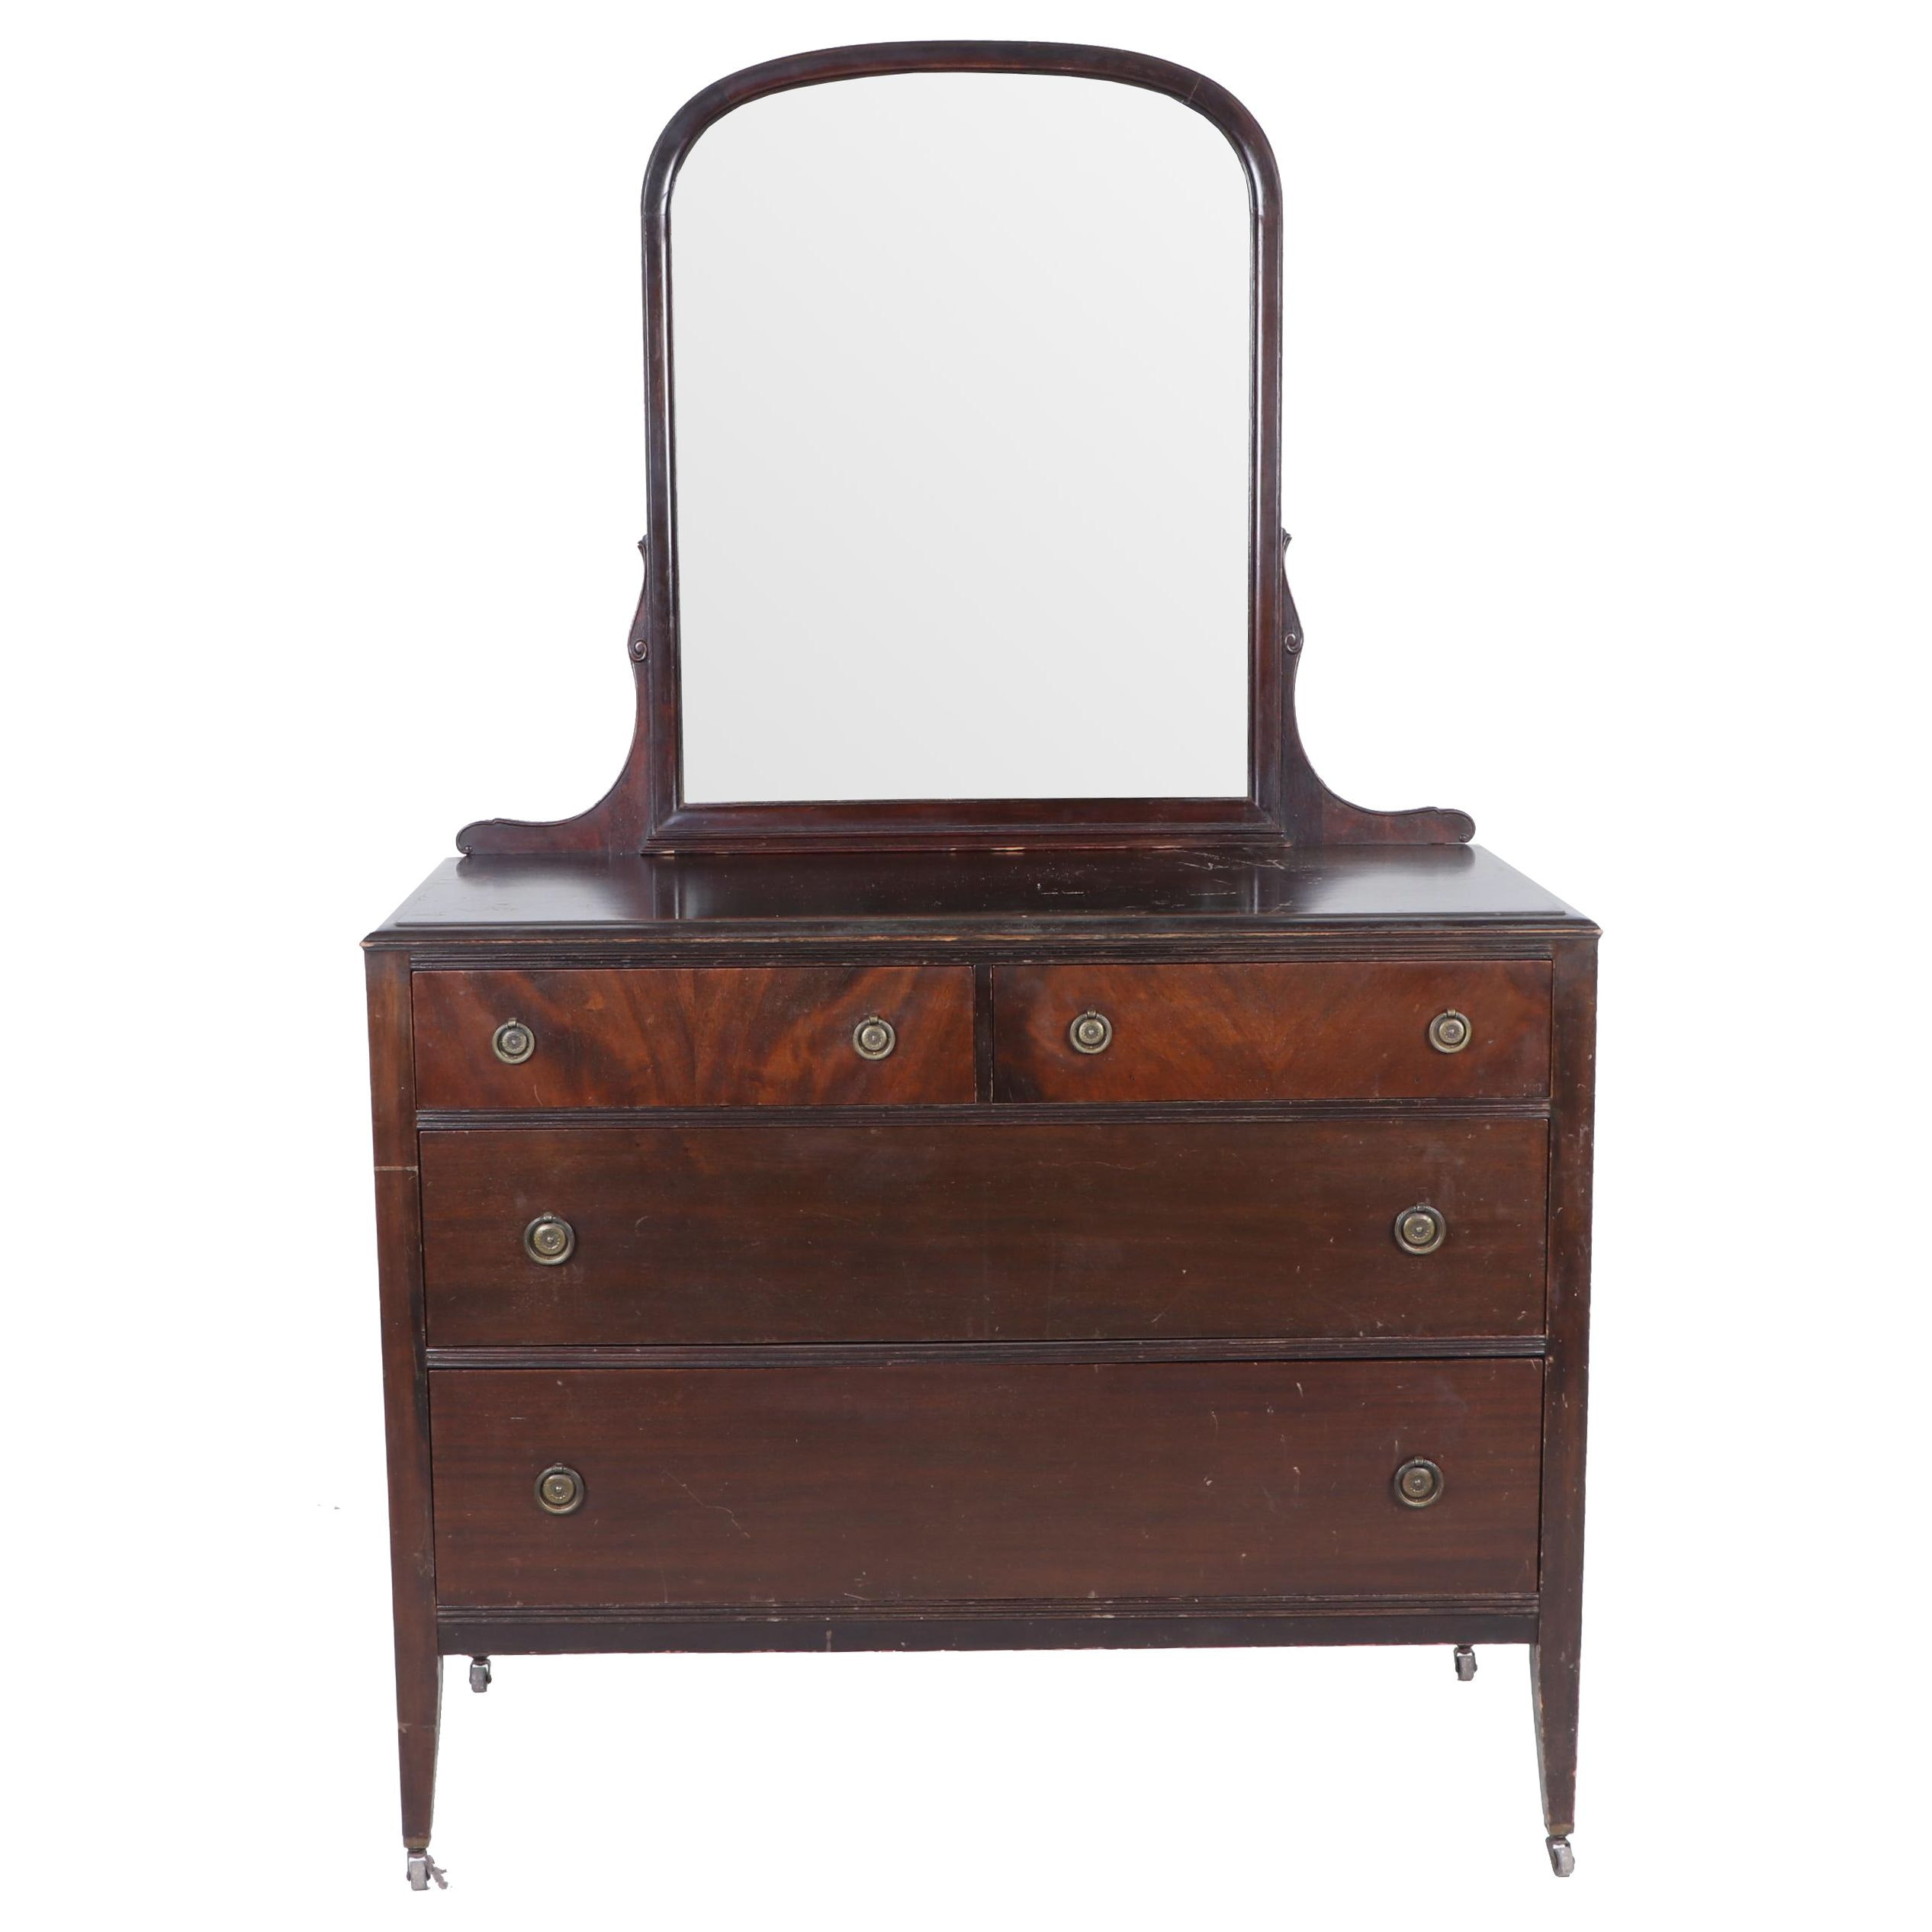 Paine Furniture Company Mahogany Finish Dresser with Mirror, Early 20th Century